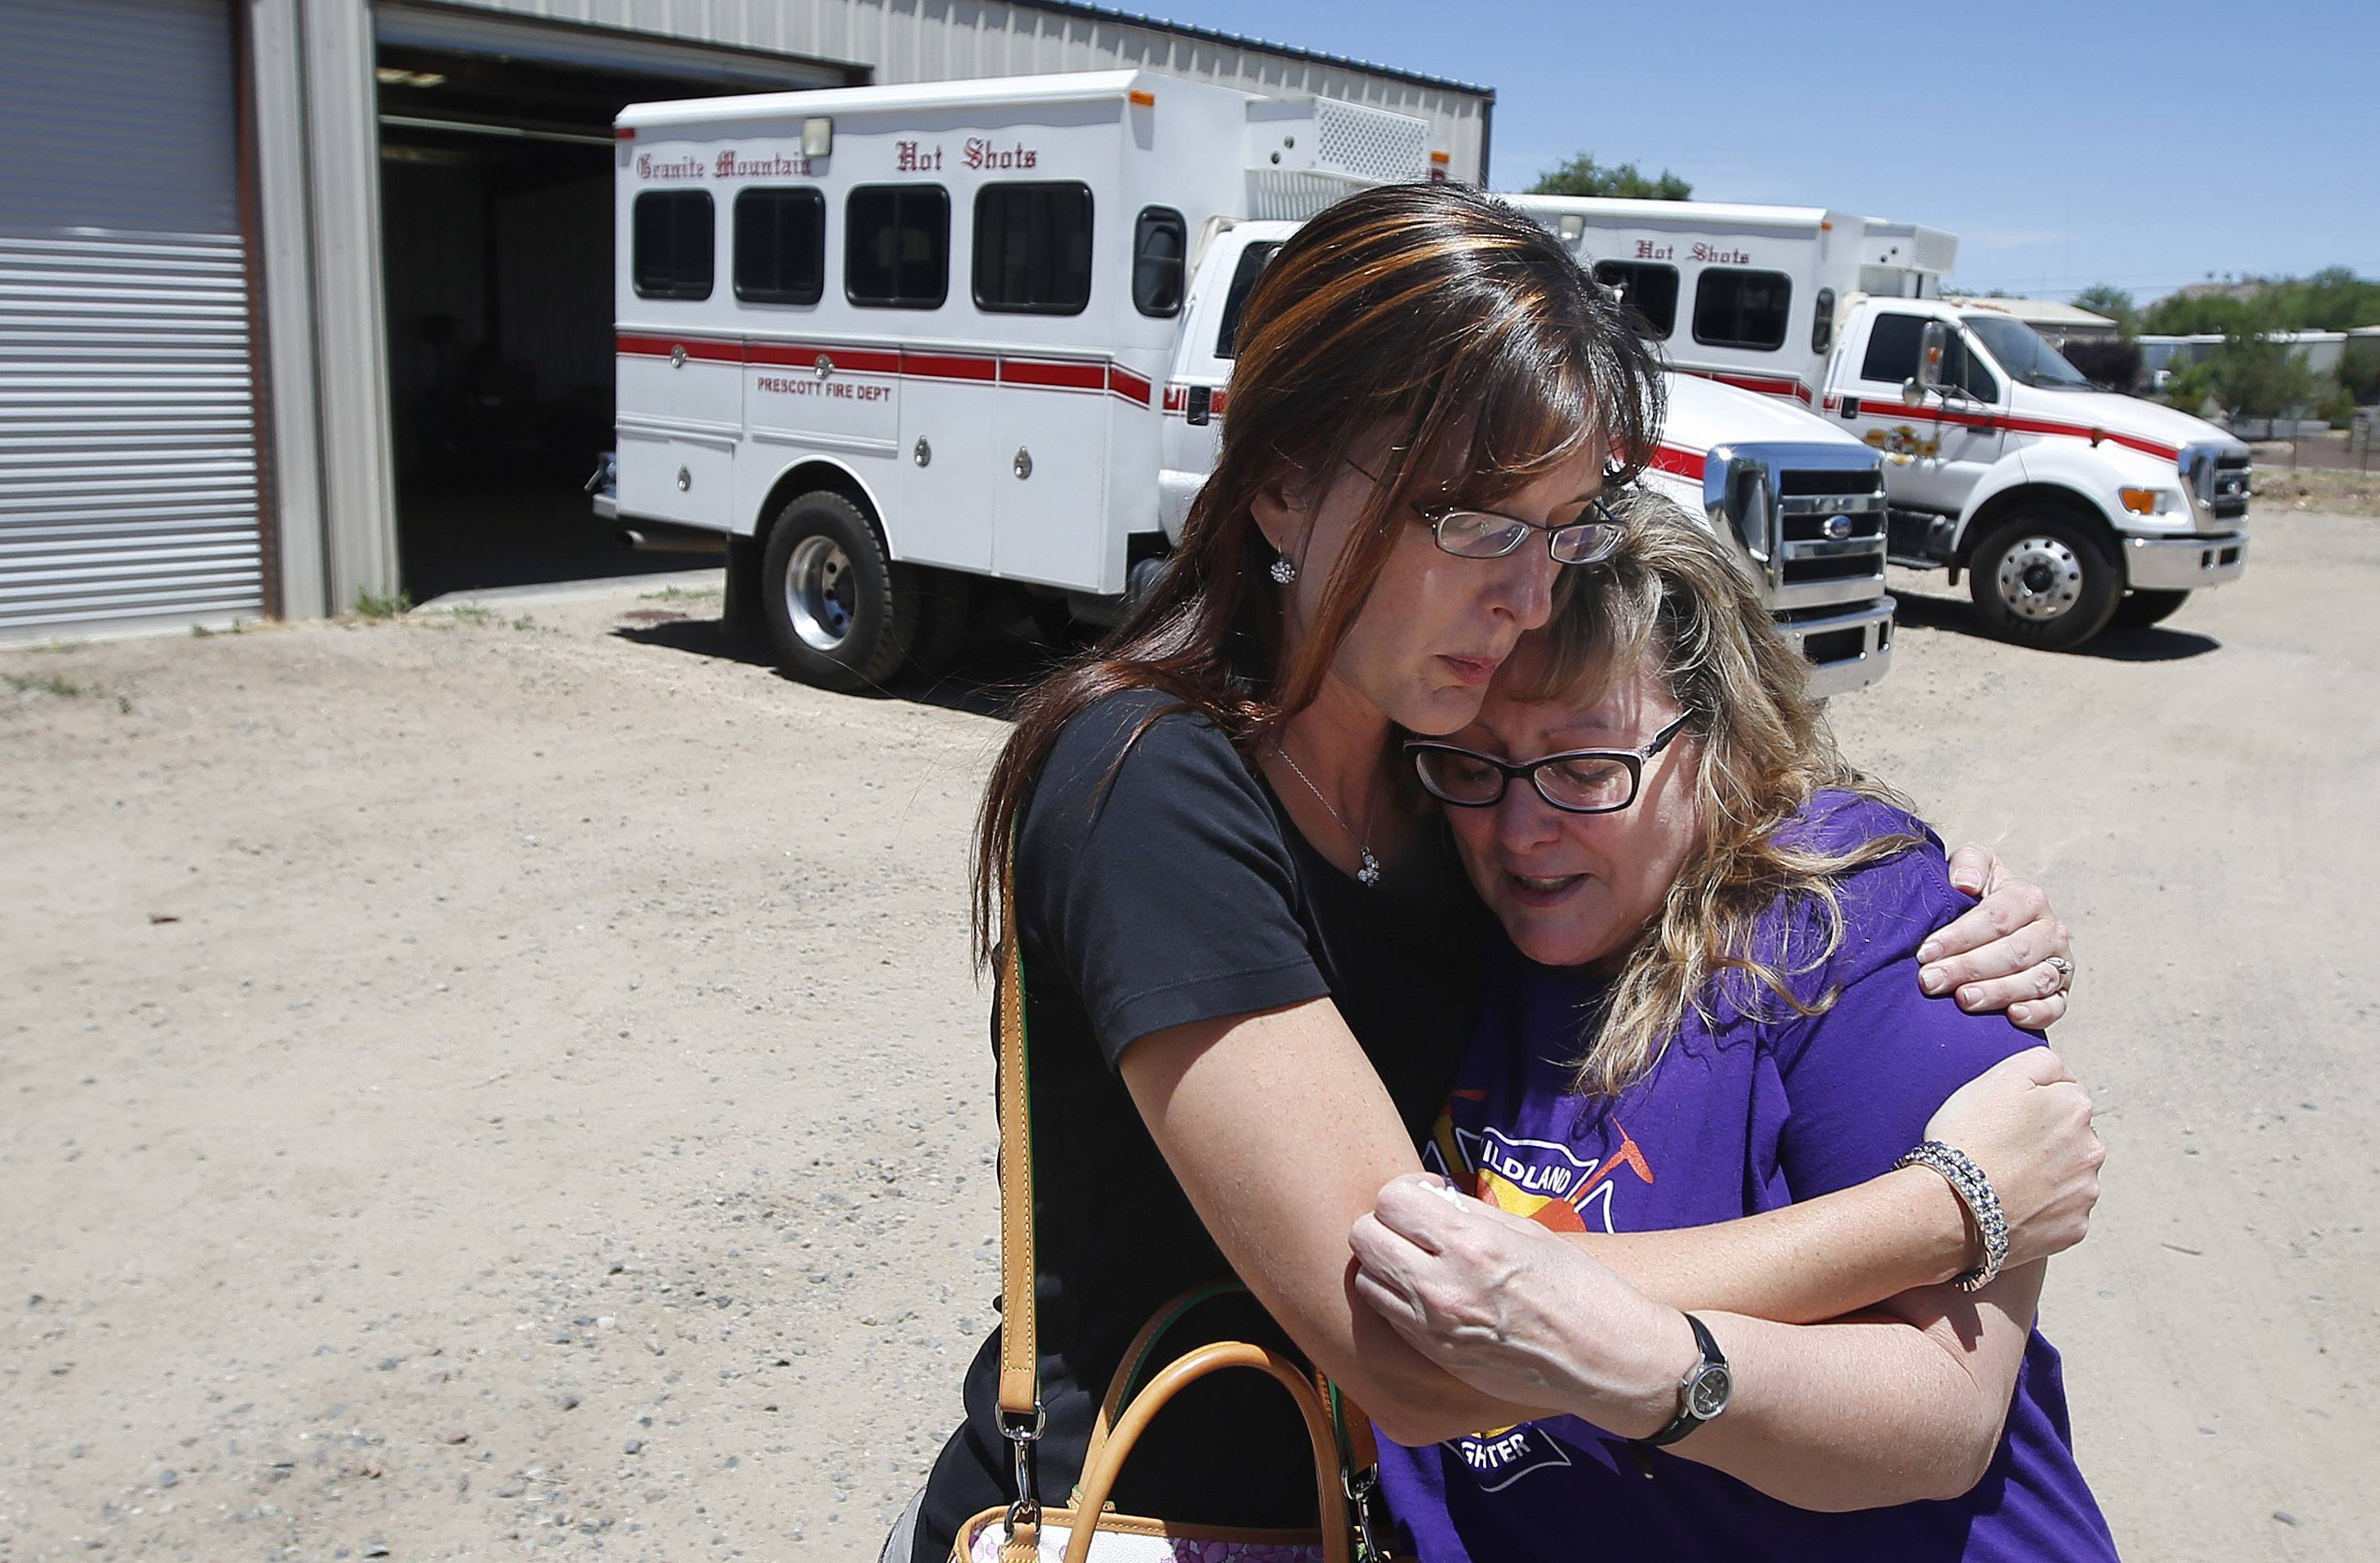 In her first visit to the firehouse in Prescott, Ariz., since her son's death, Colleen Turbyfill, right, Travis Turbyfill's mother, gets a hug from Katie Cornelius, Prescott Fire Department volunteer exhibit curator for the Tribute Fence Preservation Project, after Turbyfill visited the Granite Mountain Hotshots crew vehicle buggy where her son Travis sat before he was killed along with 18 other hotshots in a wildfire almost a year ago.